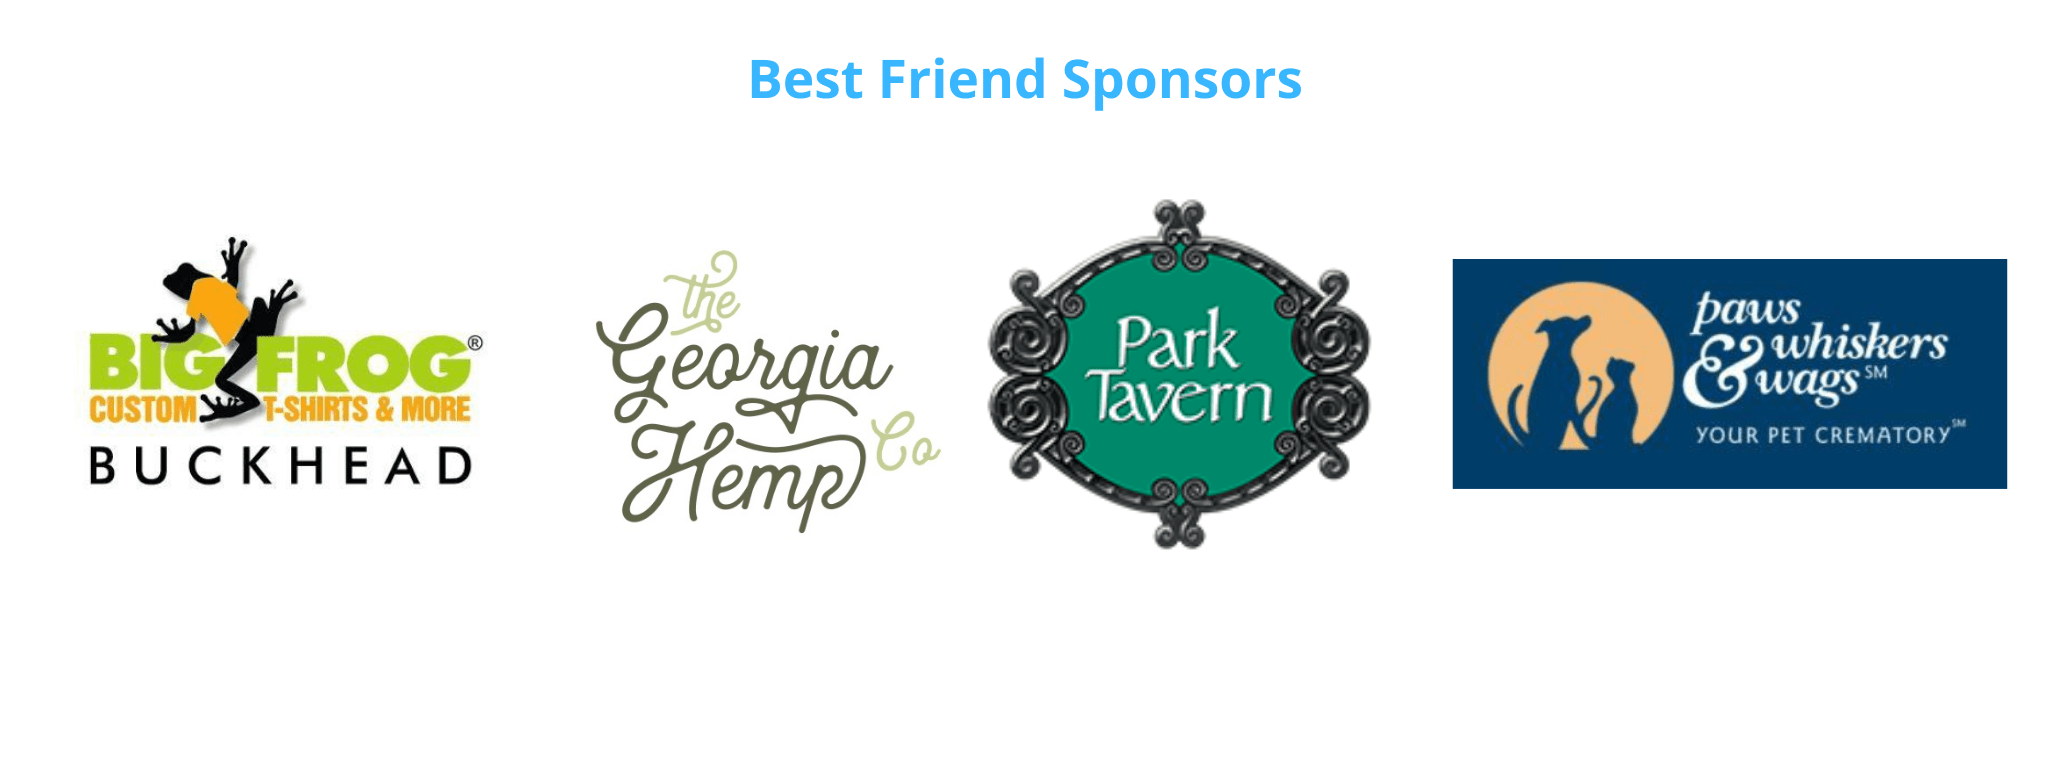 Best friend sponsors